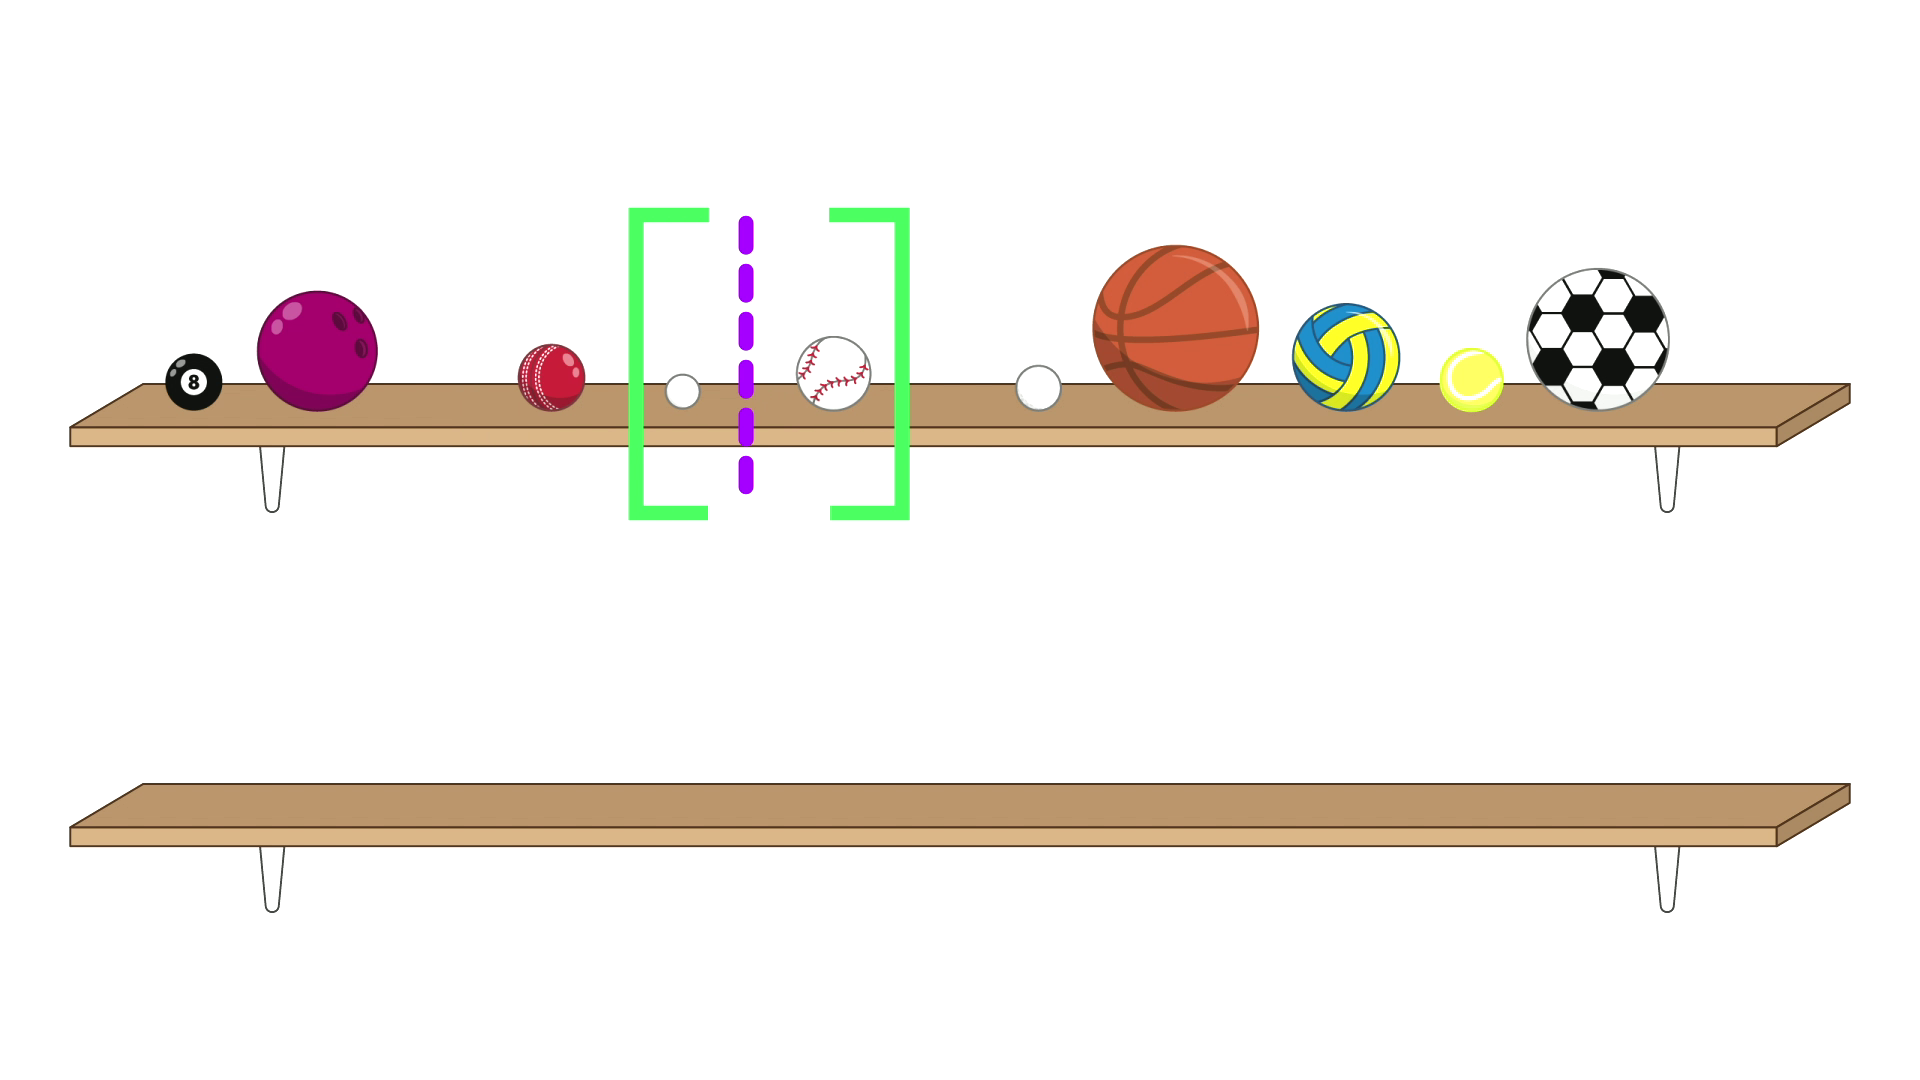 10 balls on the top shelf. The pool ball is first, followed by the bowling ball, and a small gap before a cricket ball. The next two balls, a ping-pong ball and a baseball, are surrounded by a pair of green brackets. There is a purple dashed line in-between these two balls. After the brackets are the remaining five balls: a golf ball, a basketball, a netball, a tennis ball and a soccer ball. The bottom shelf is empty.